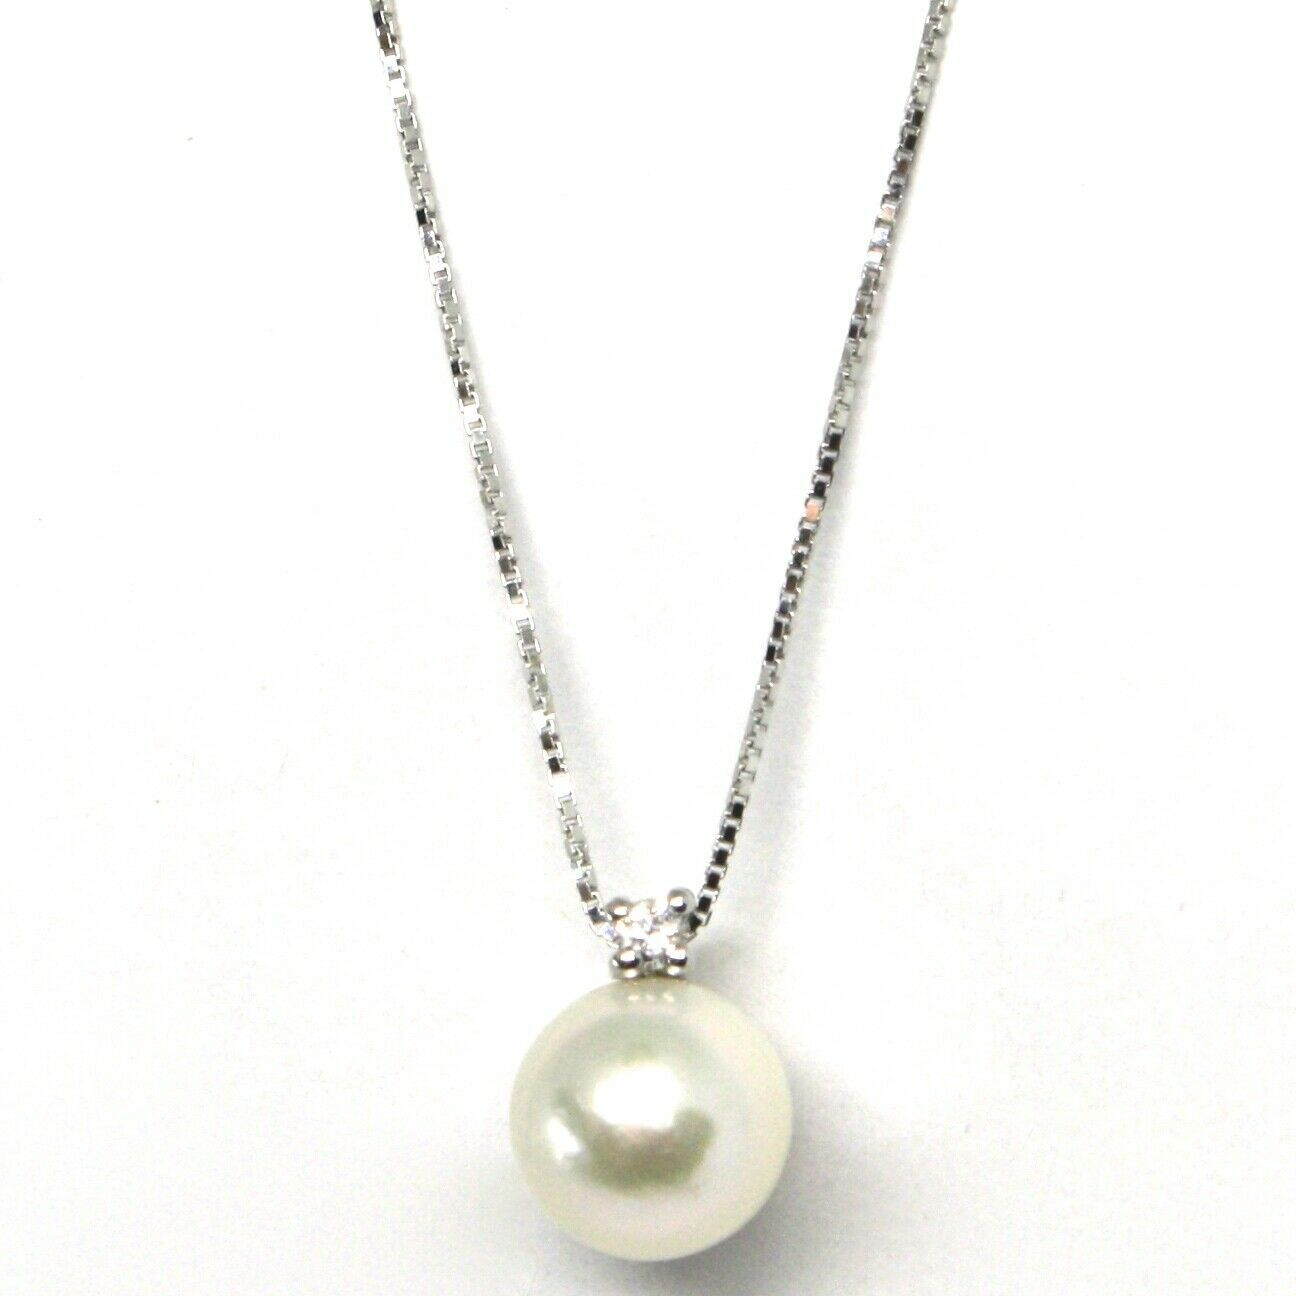 18K WHITE GOLD NECKLACE AKOYA PEARL 7.5 MM AND DIAMOND, PENDANT & VENETIAN CHAIN